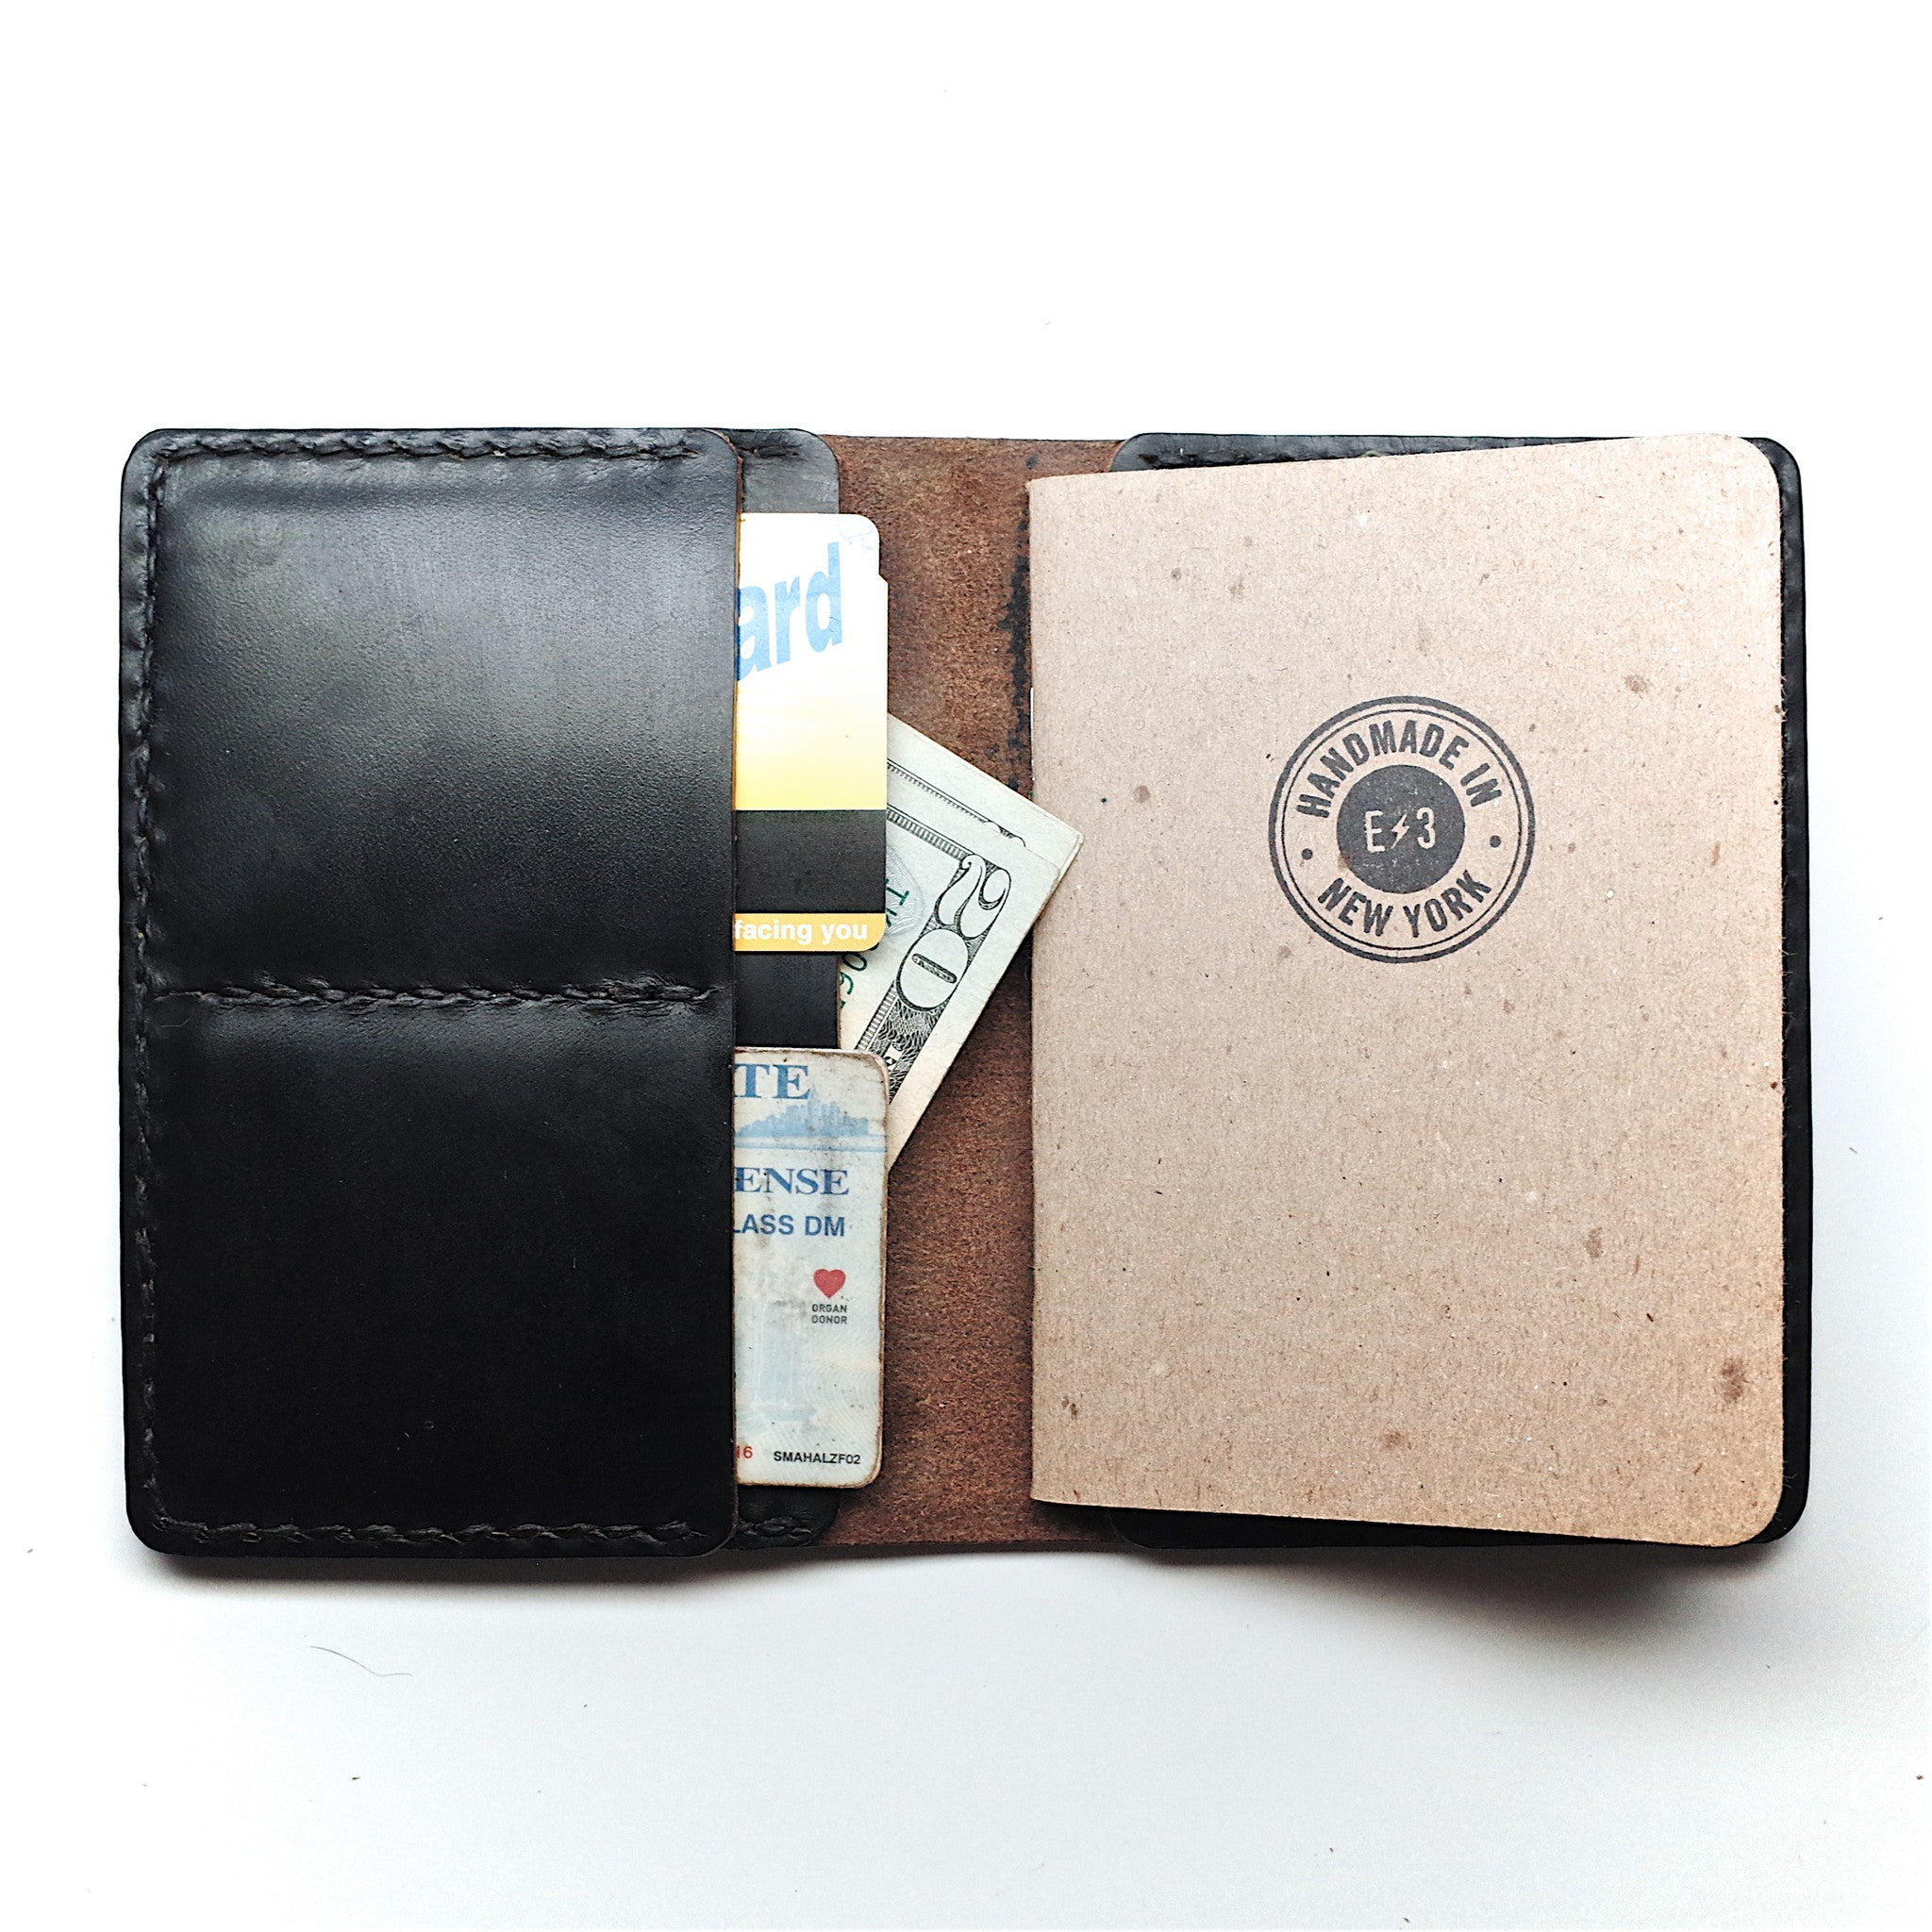 Horween Leather Passport Wallet by E3 Supply Co- Black Chromexcel